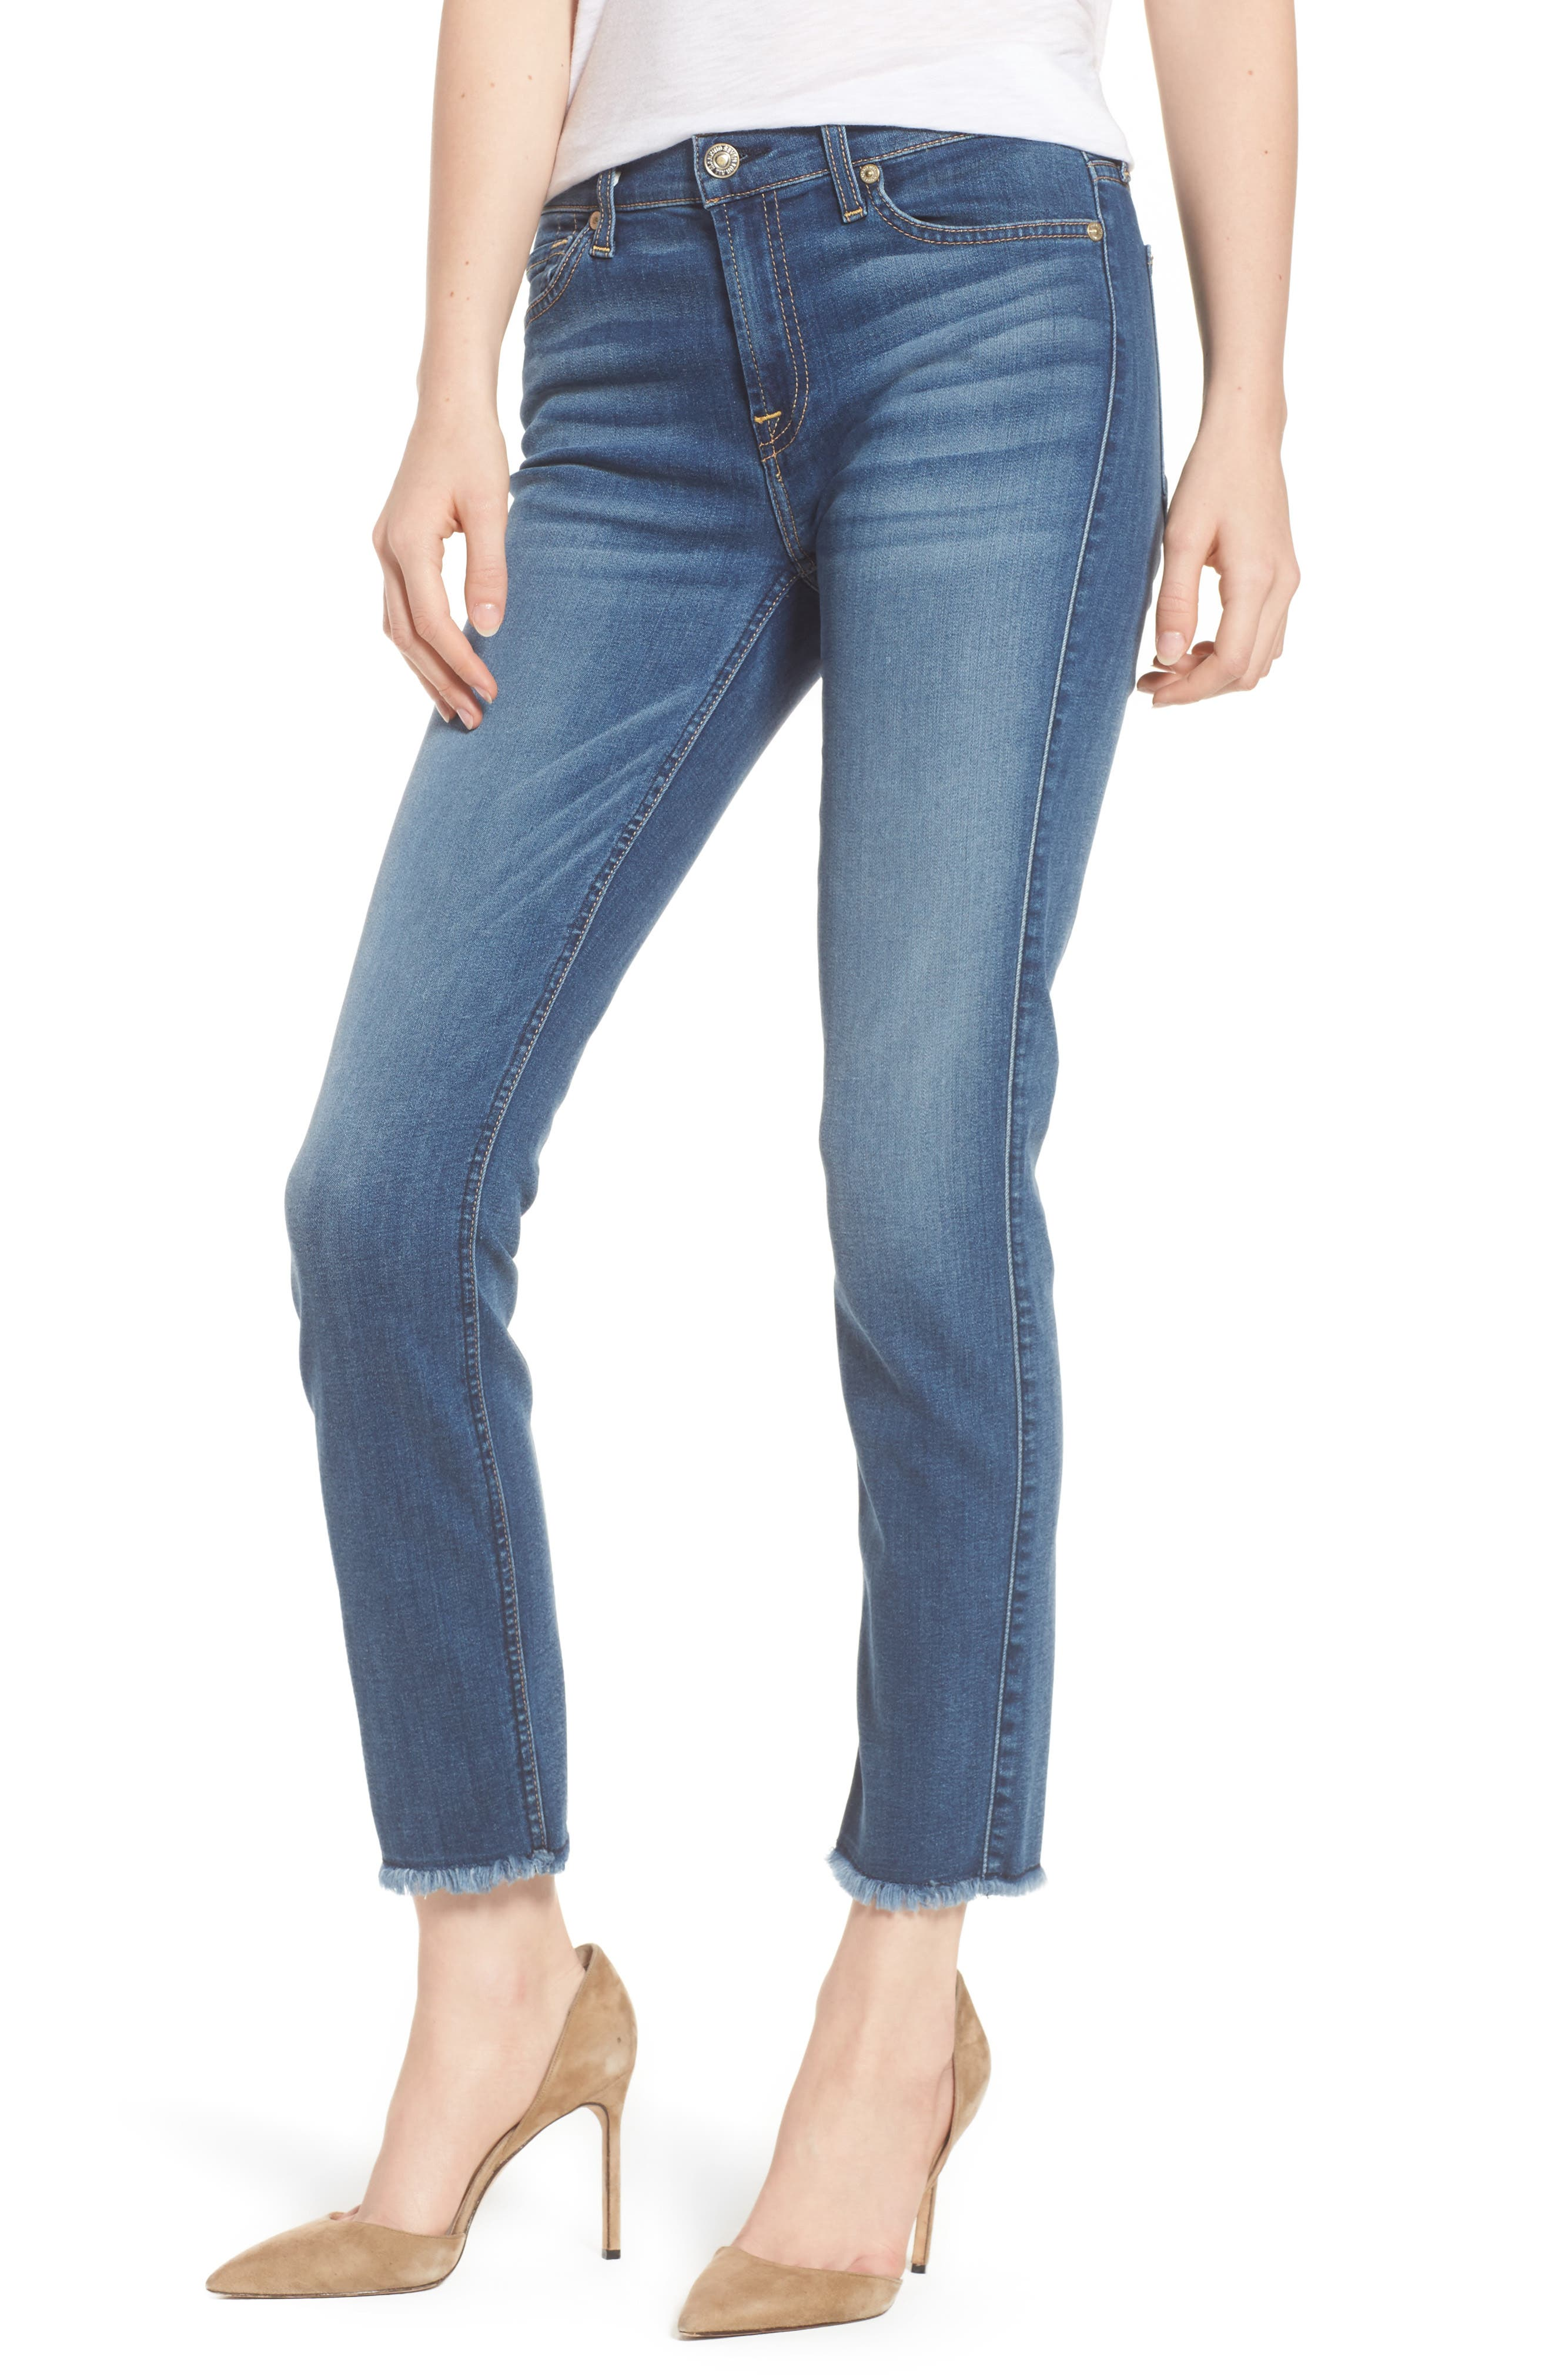 b(air) Roxanne Ankle Straight Leg Jeans,                         Main,                         color, Bair Vintage Dusk